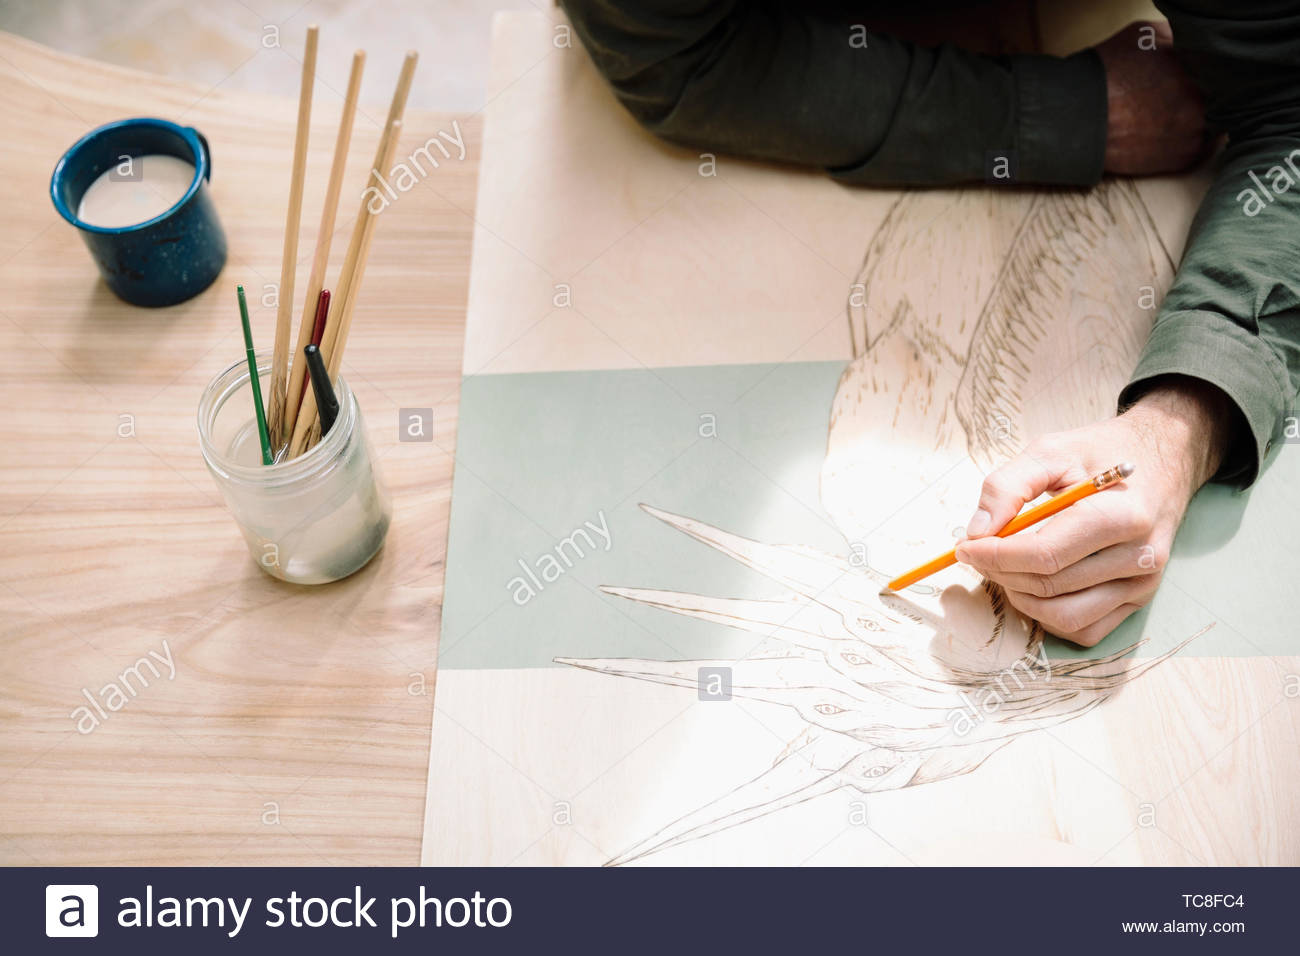 Male artist drawing heron - Stock Image